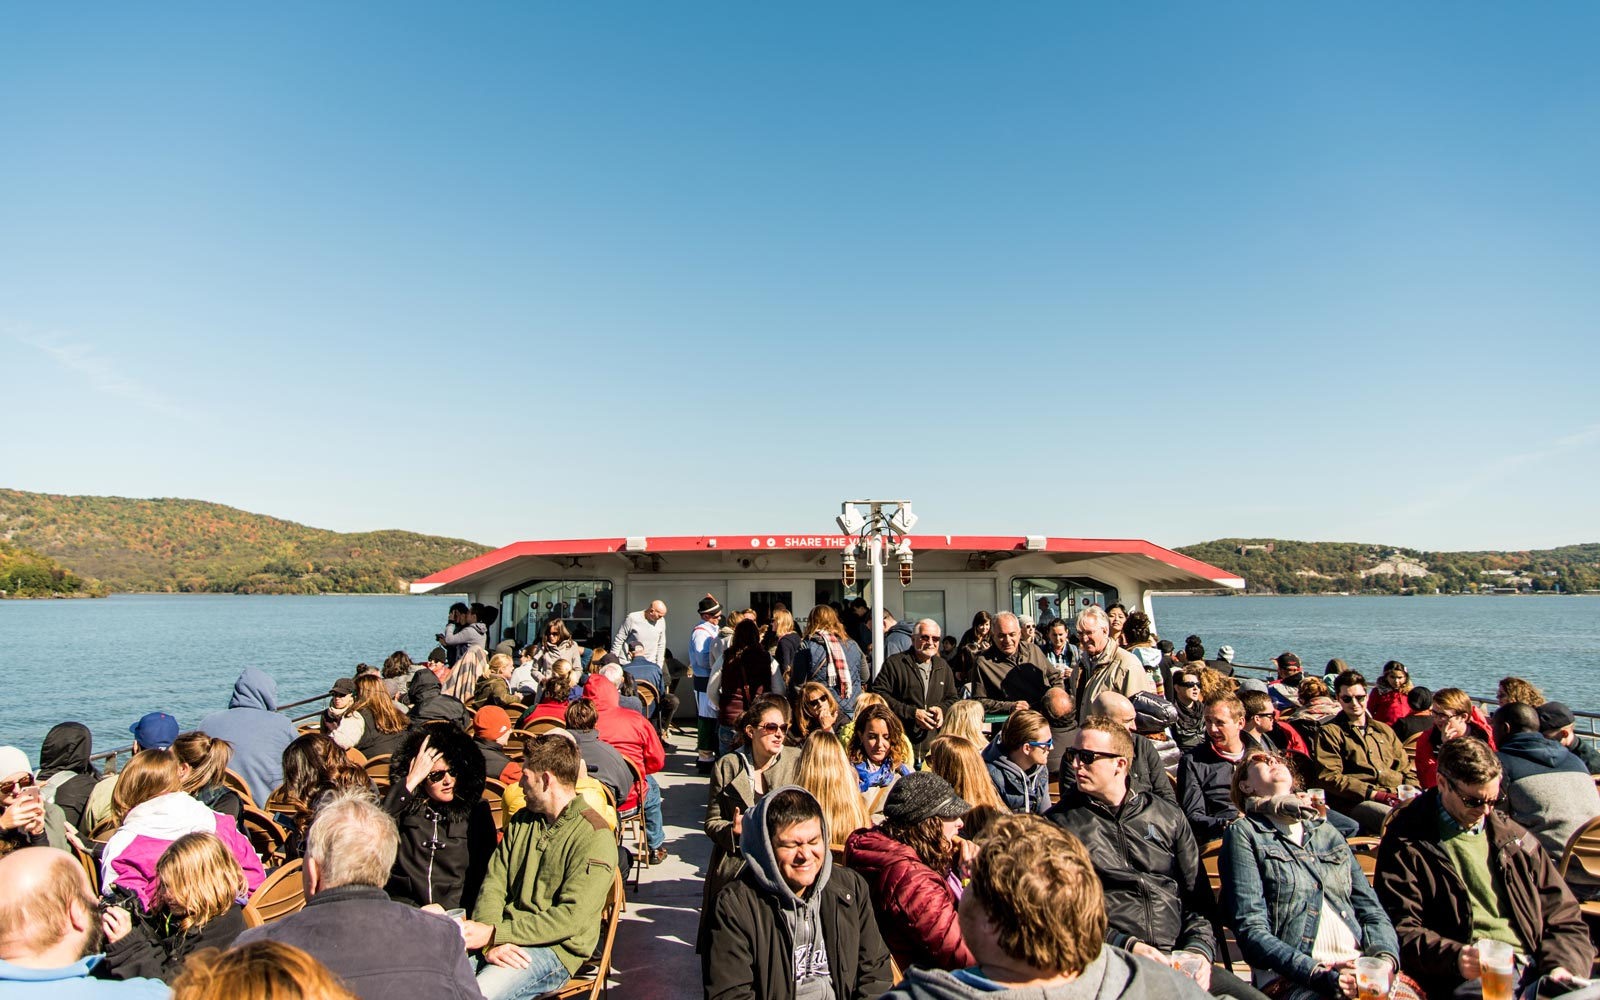 This Day Trip Will Have You Peeping Fall Foliage and Celebrating Oktoberfest While Cruising the Hudson River